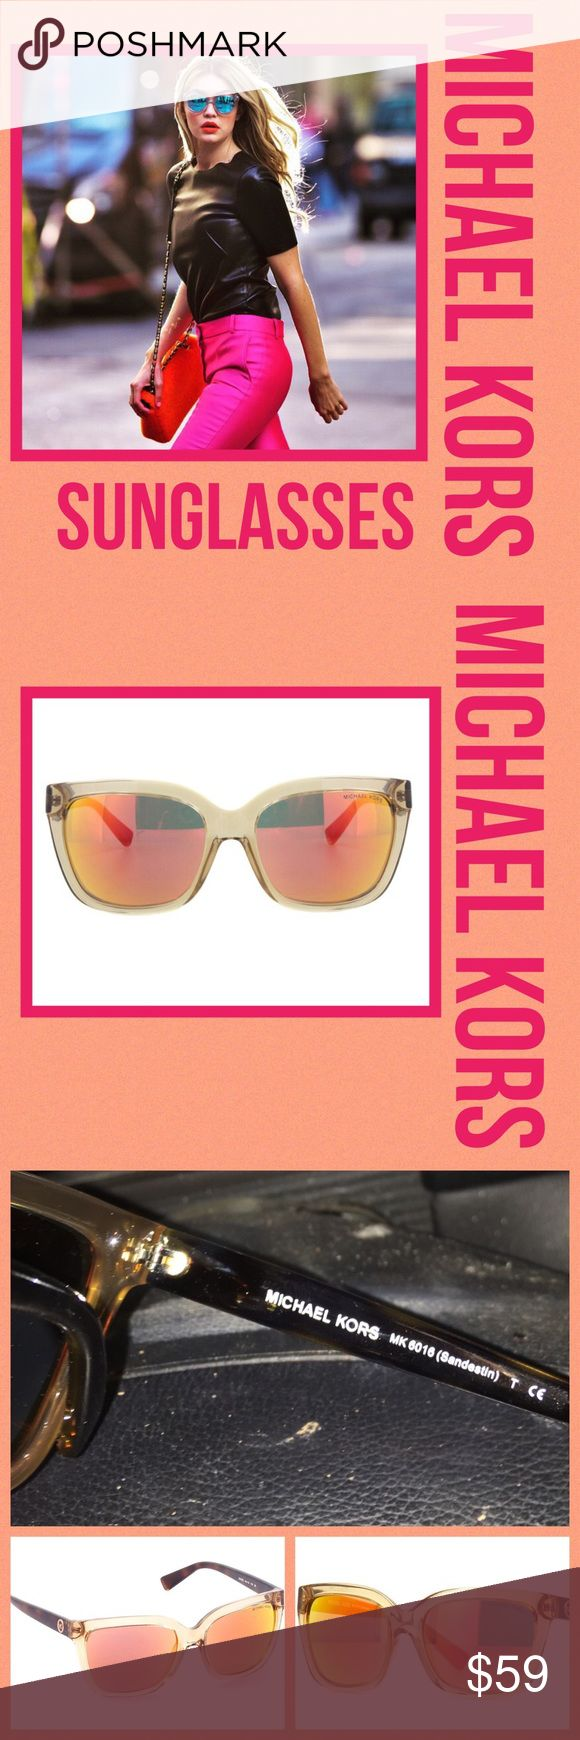 Michael Kors NWT 6016 Crystal Beige Mirror Shades Michael Kors MK 6016 30516Q 54 Sandestin Crystal Beige Orange Mirror Sunglasses NWT never worn so hot  Brand: Michael Kors Model: 6016 MK Color Code: 30516Q Frame Color: Crystal Beige Brown Gender: UNISEX Size: 54-16-135  We guarantee each product to be 100% Authentic. Every single item is brand new, never used and never worn. Michael Kors Accessories Sunglasses